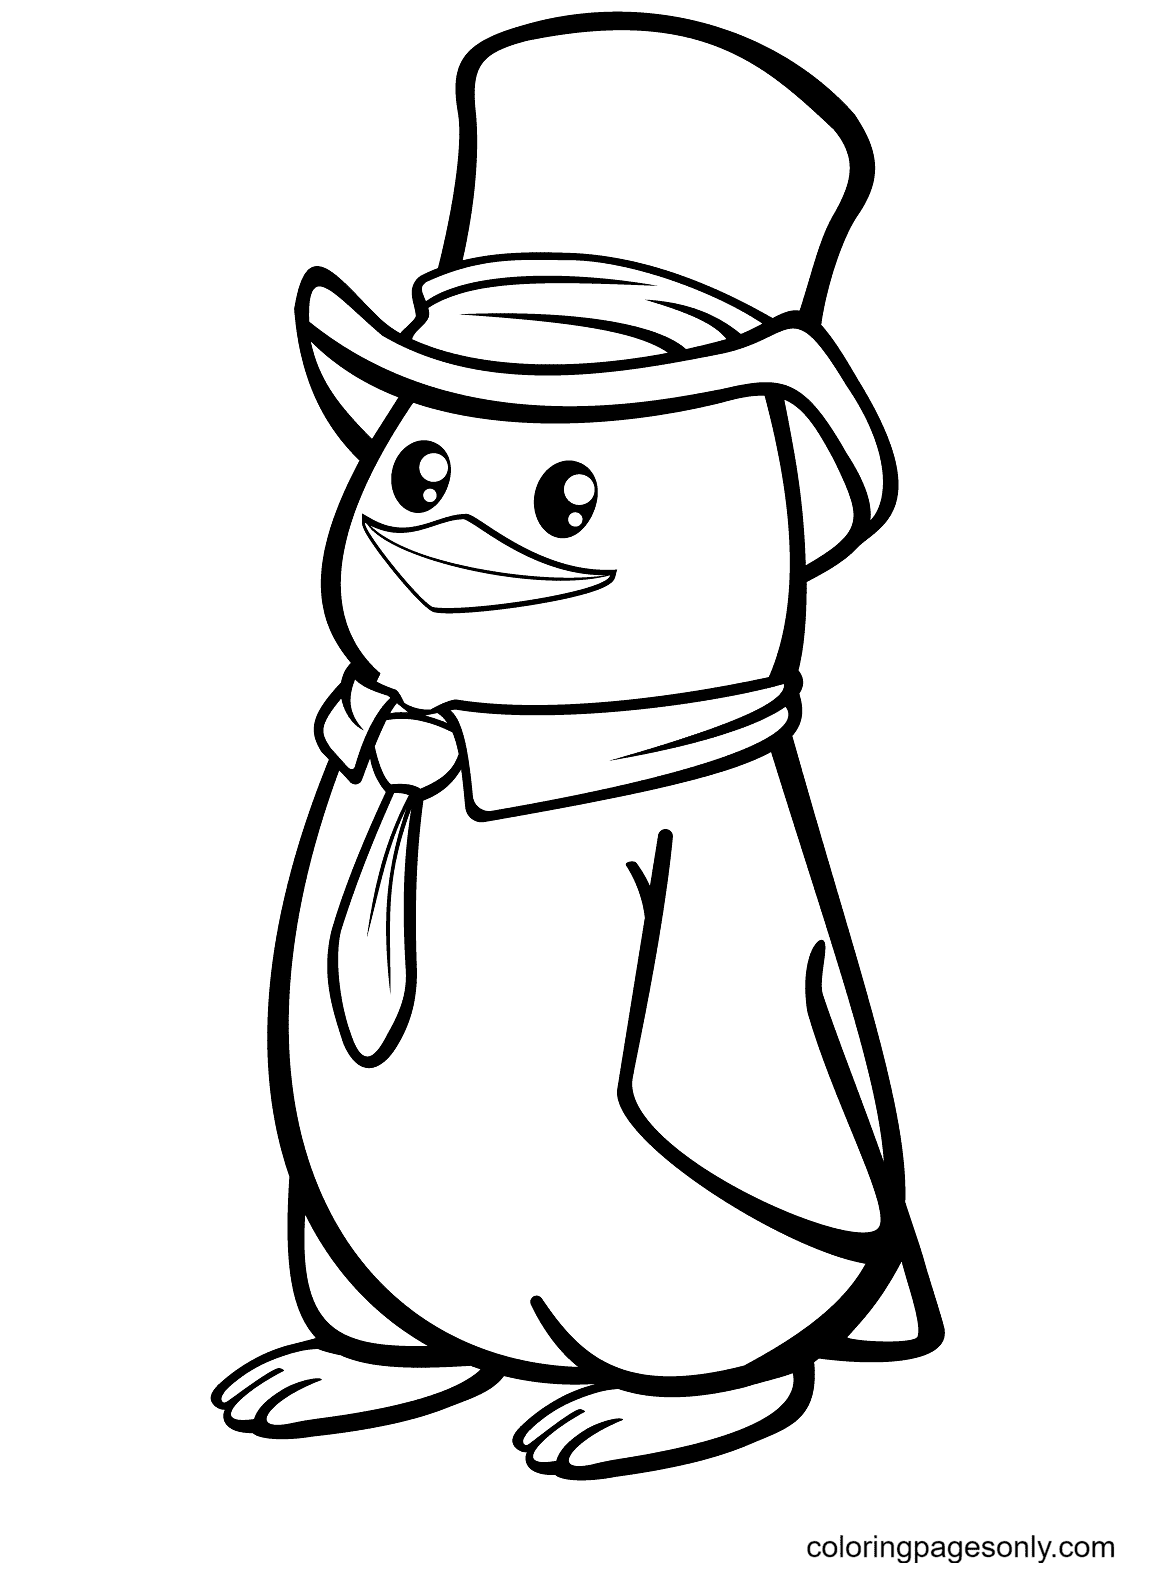 Polar Penguin with a Top Hat Coloring Page